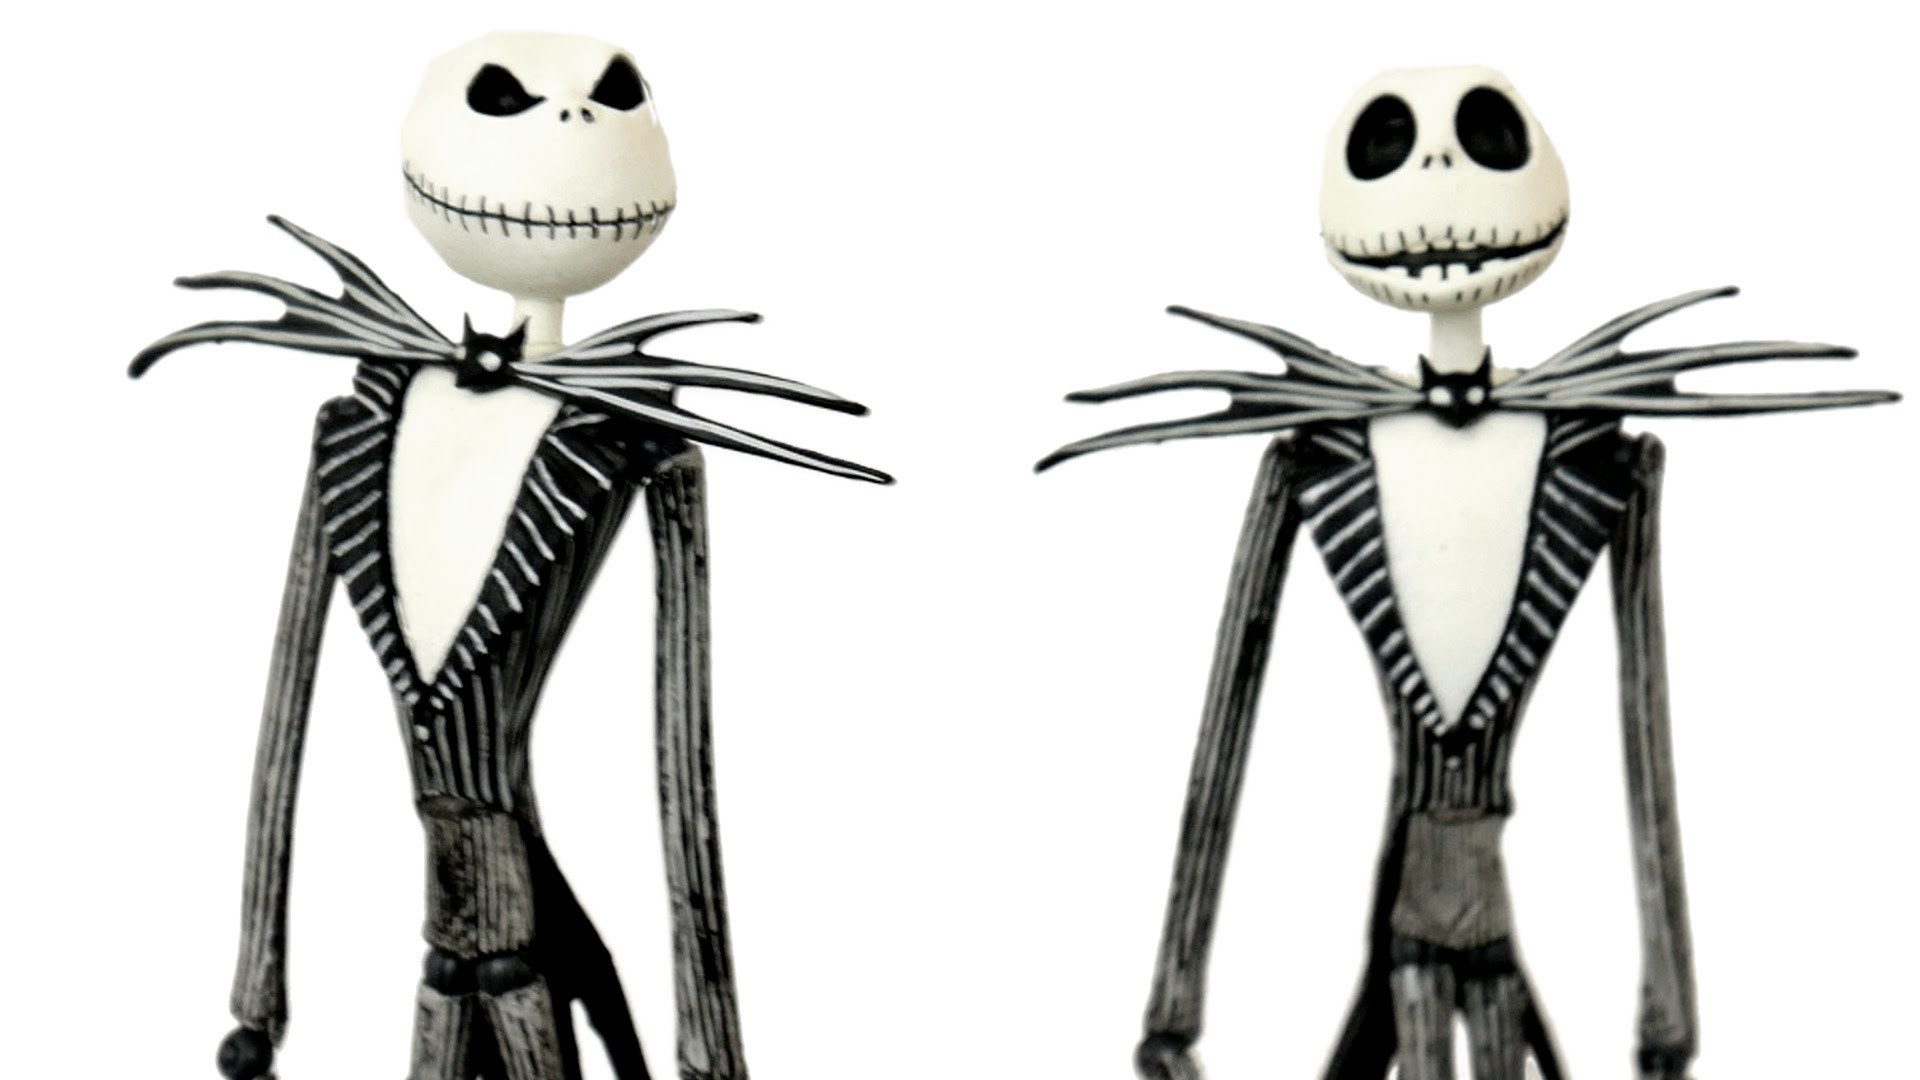 Jack Skellington Nightmare Before Christmas Toys R Us Exclusive Toy  Unboxing, Comparison & Review!! – YouTube